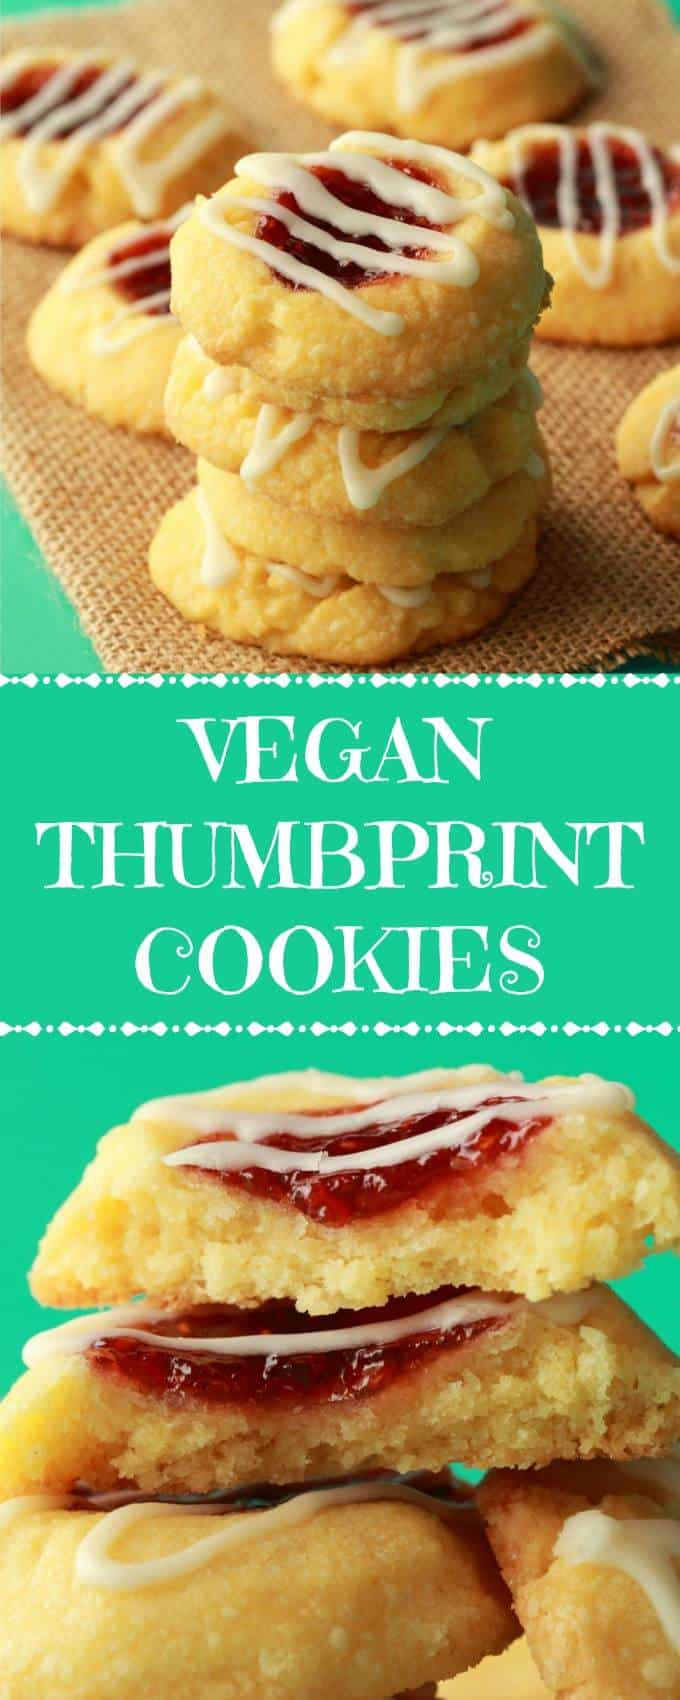 Soft and buttery vegan thumbprint cookies with a raspberry jam center and almond glaze. These perfectly sweet melt-in-your-mouth shortbread cookie delights are so easy and fun to make and simply gorgeous! | lovingitvegan.com